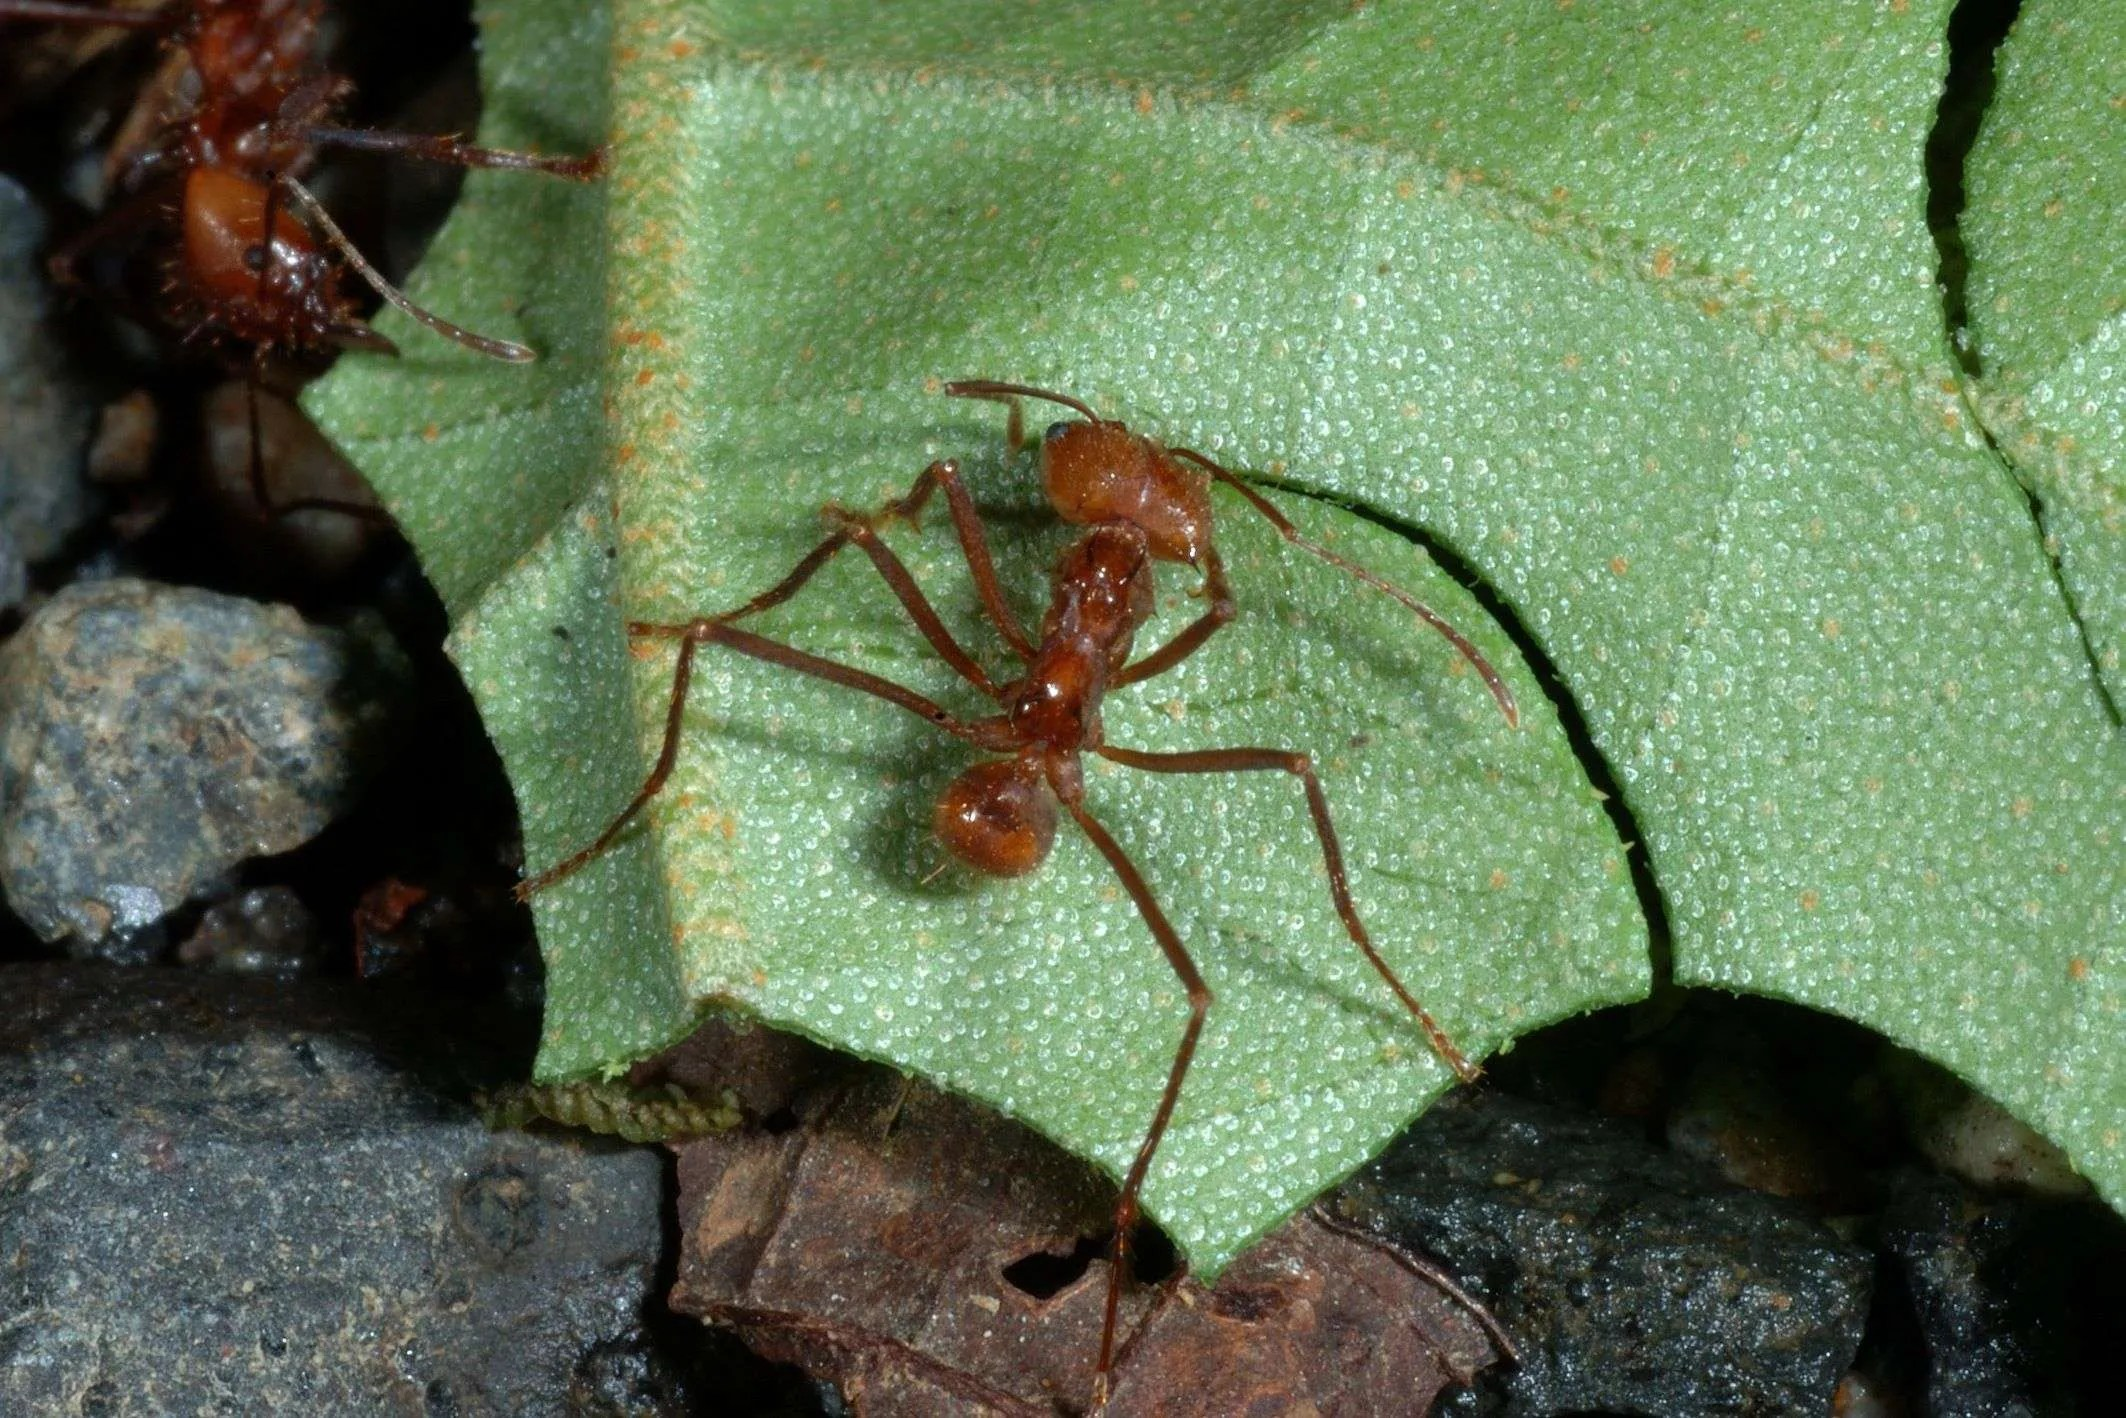 Tropical Insects: Amazing Leaf-Cutter Ants